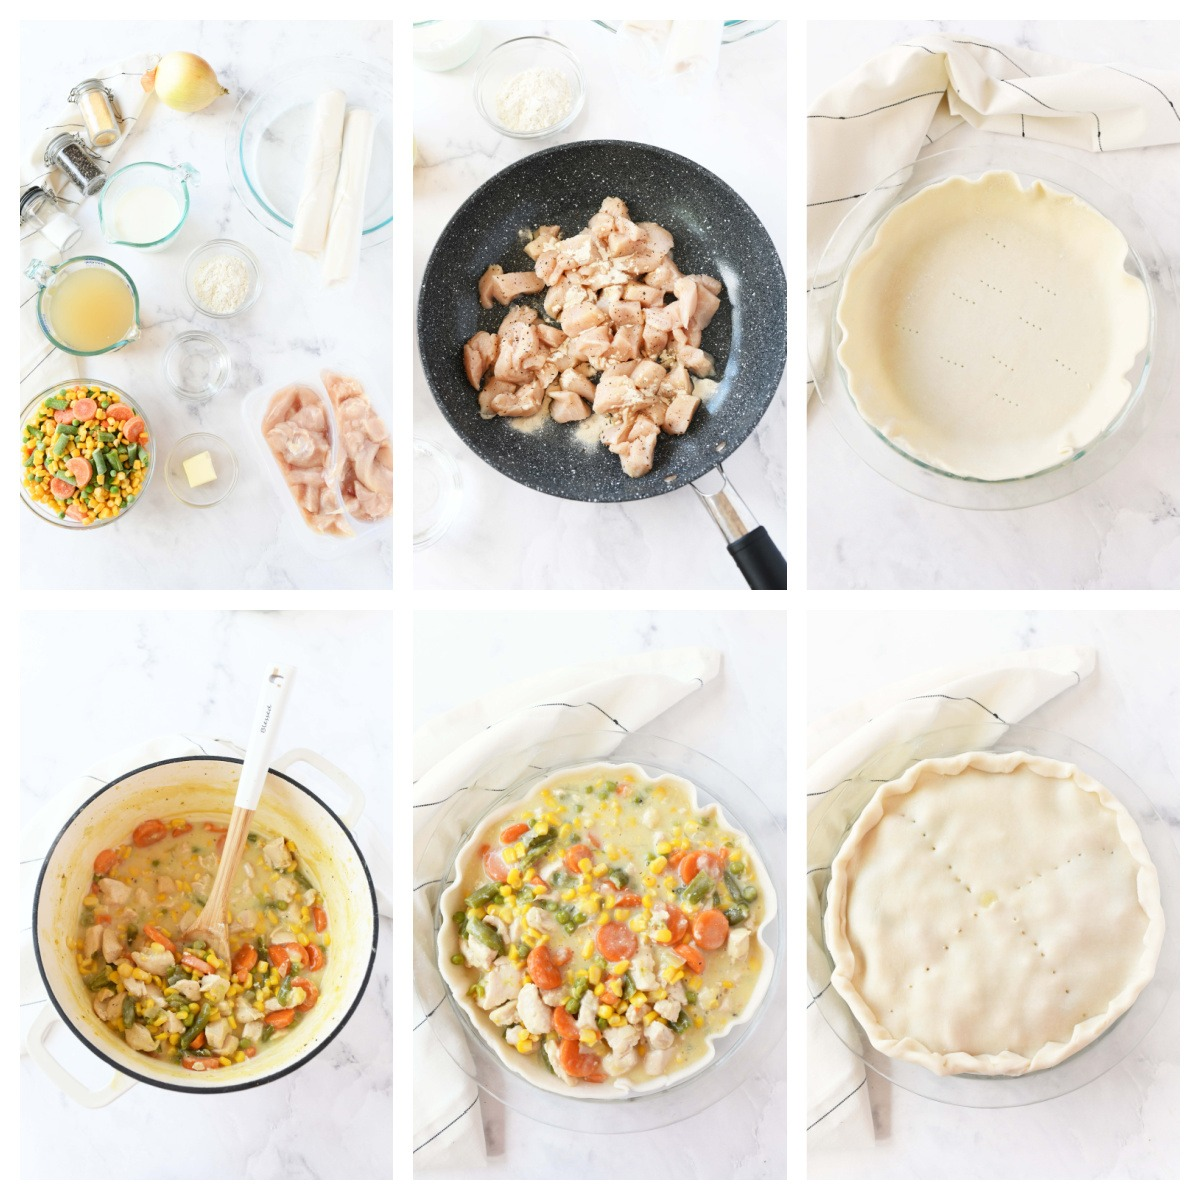 A 6 image collage of the steps to make chicken pot pie.